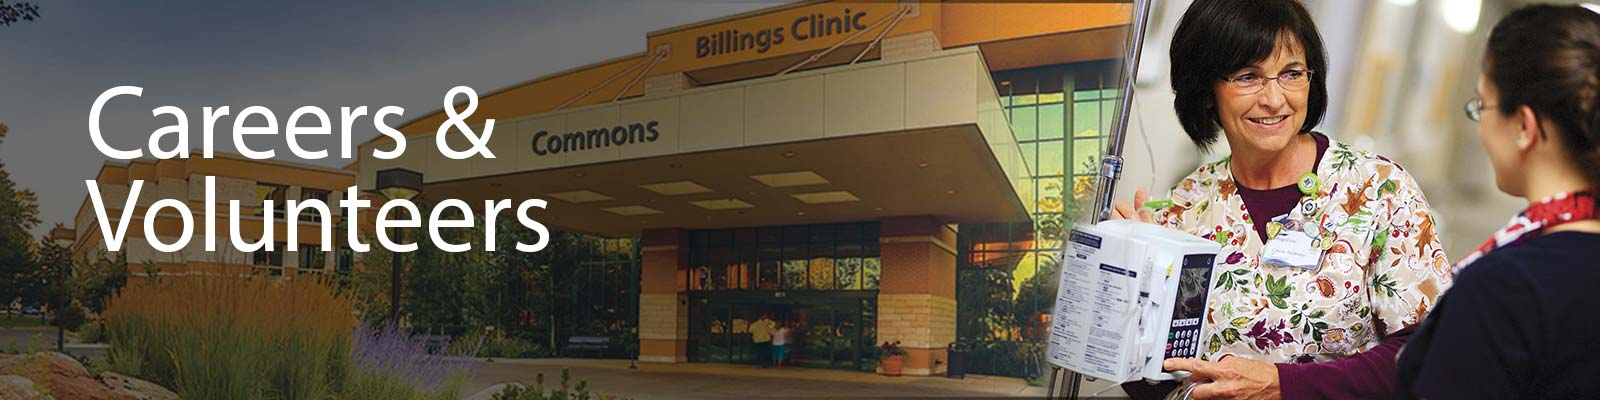 Billings Clinic Careers